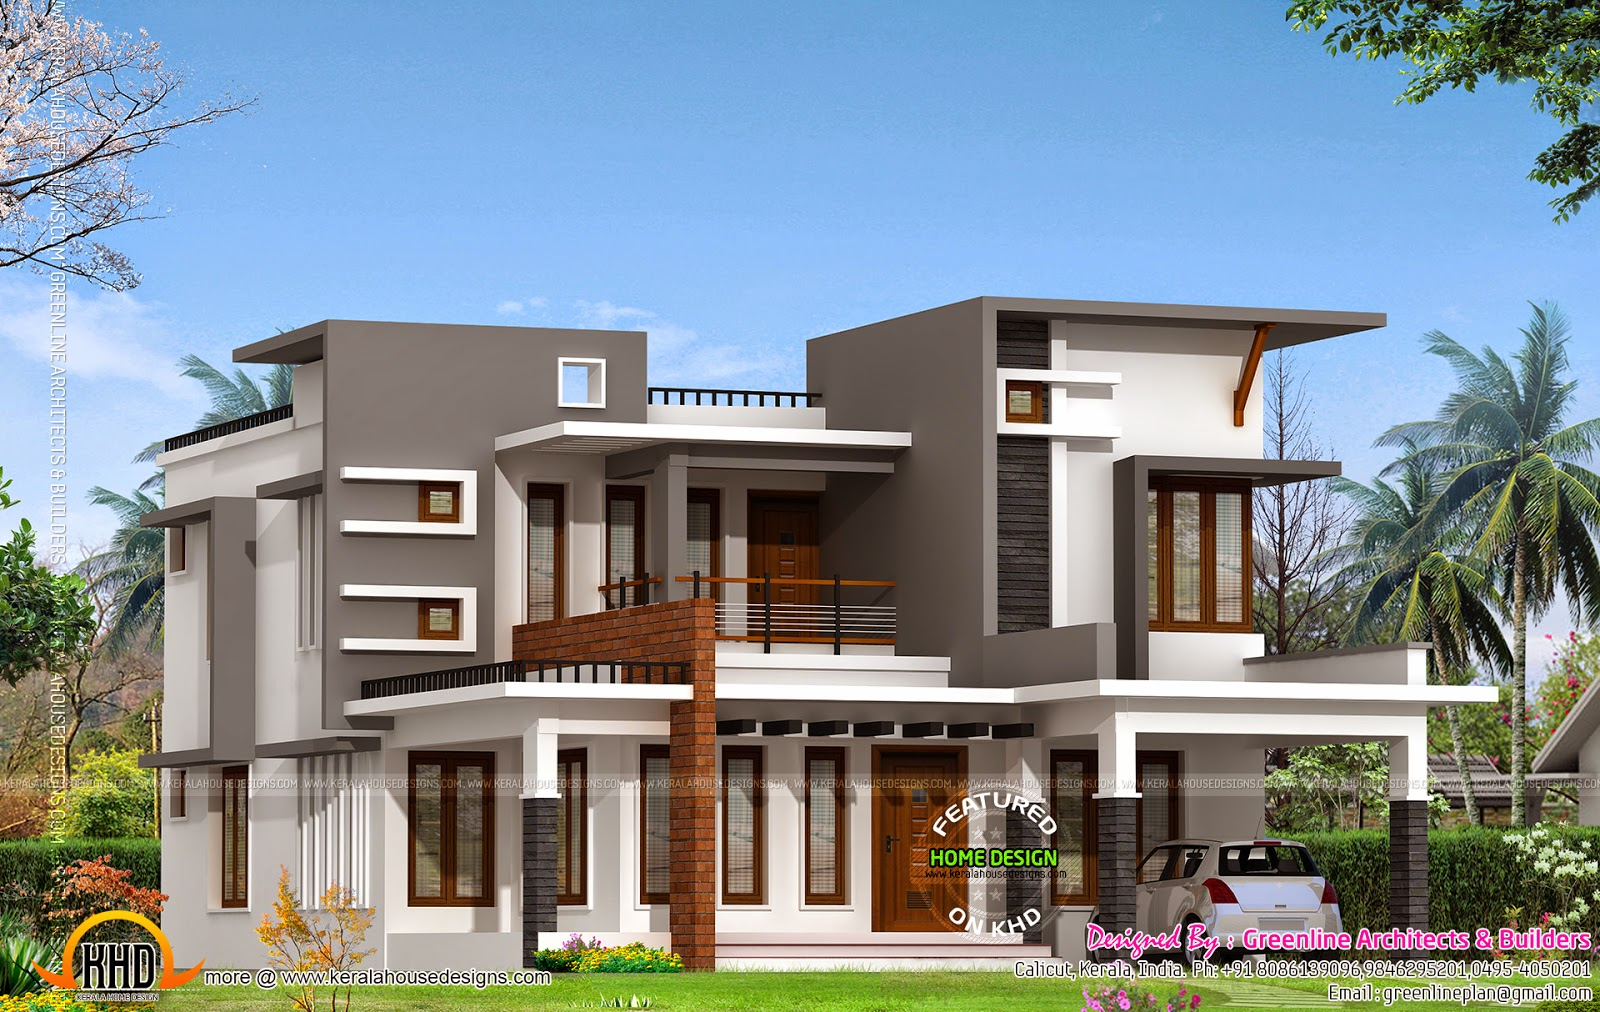 Contemporary house with estimate cost 28 lakhs kerala for Contemporary style homes in kerala